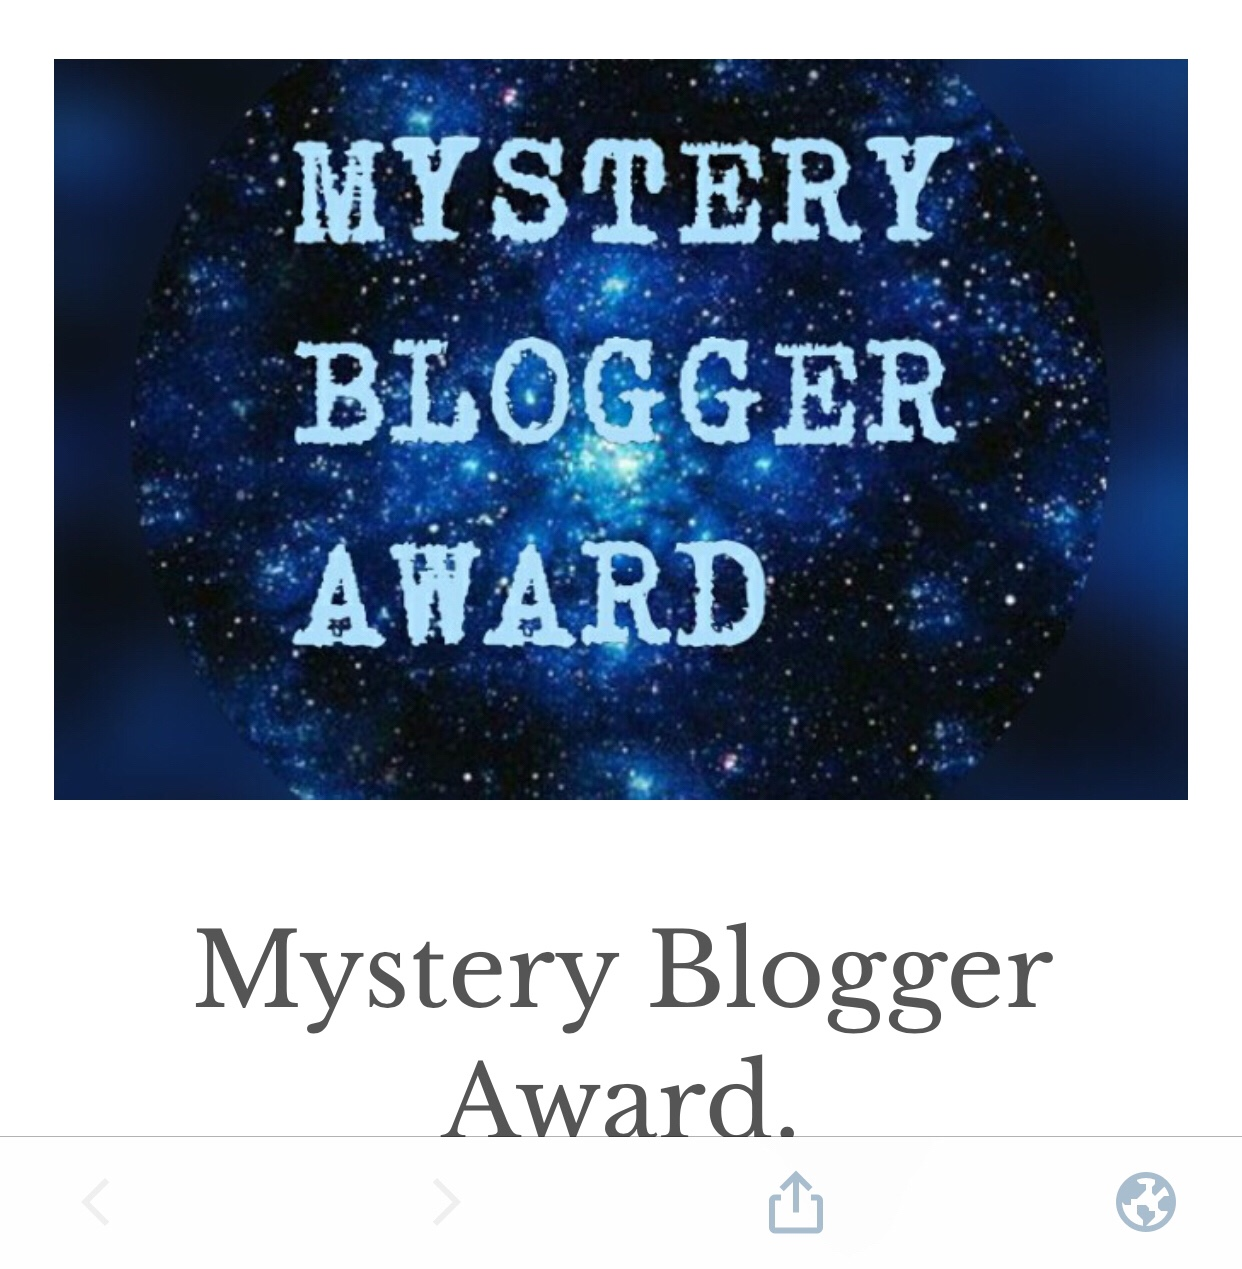 Nominated for Mystery Blogger Award(6th)